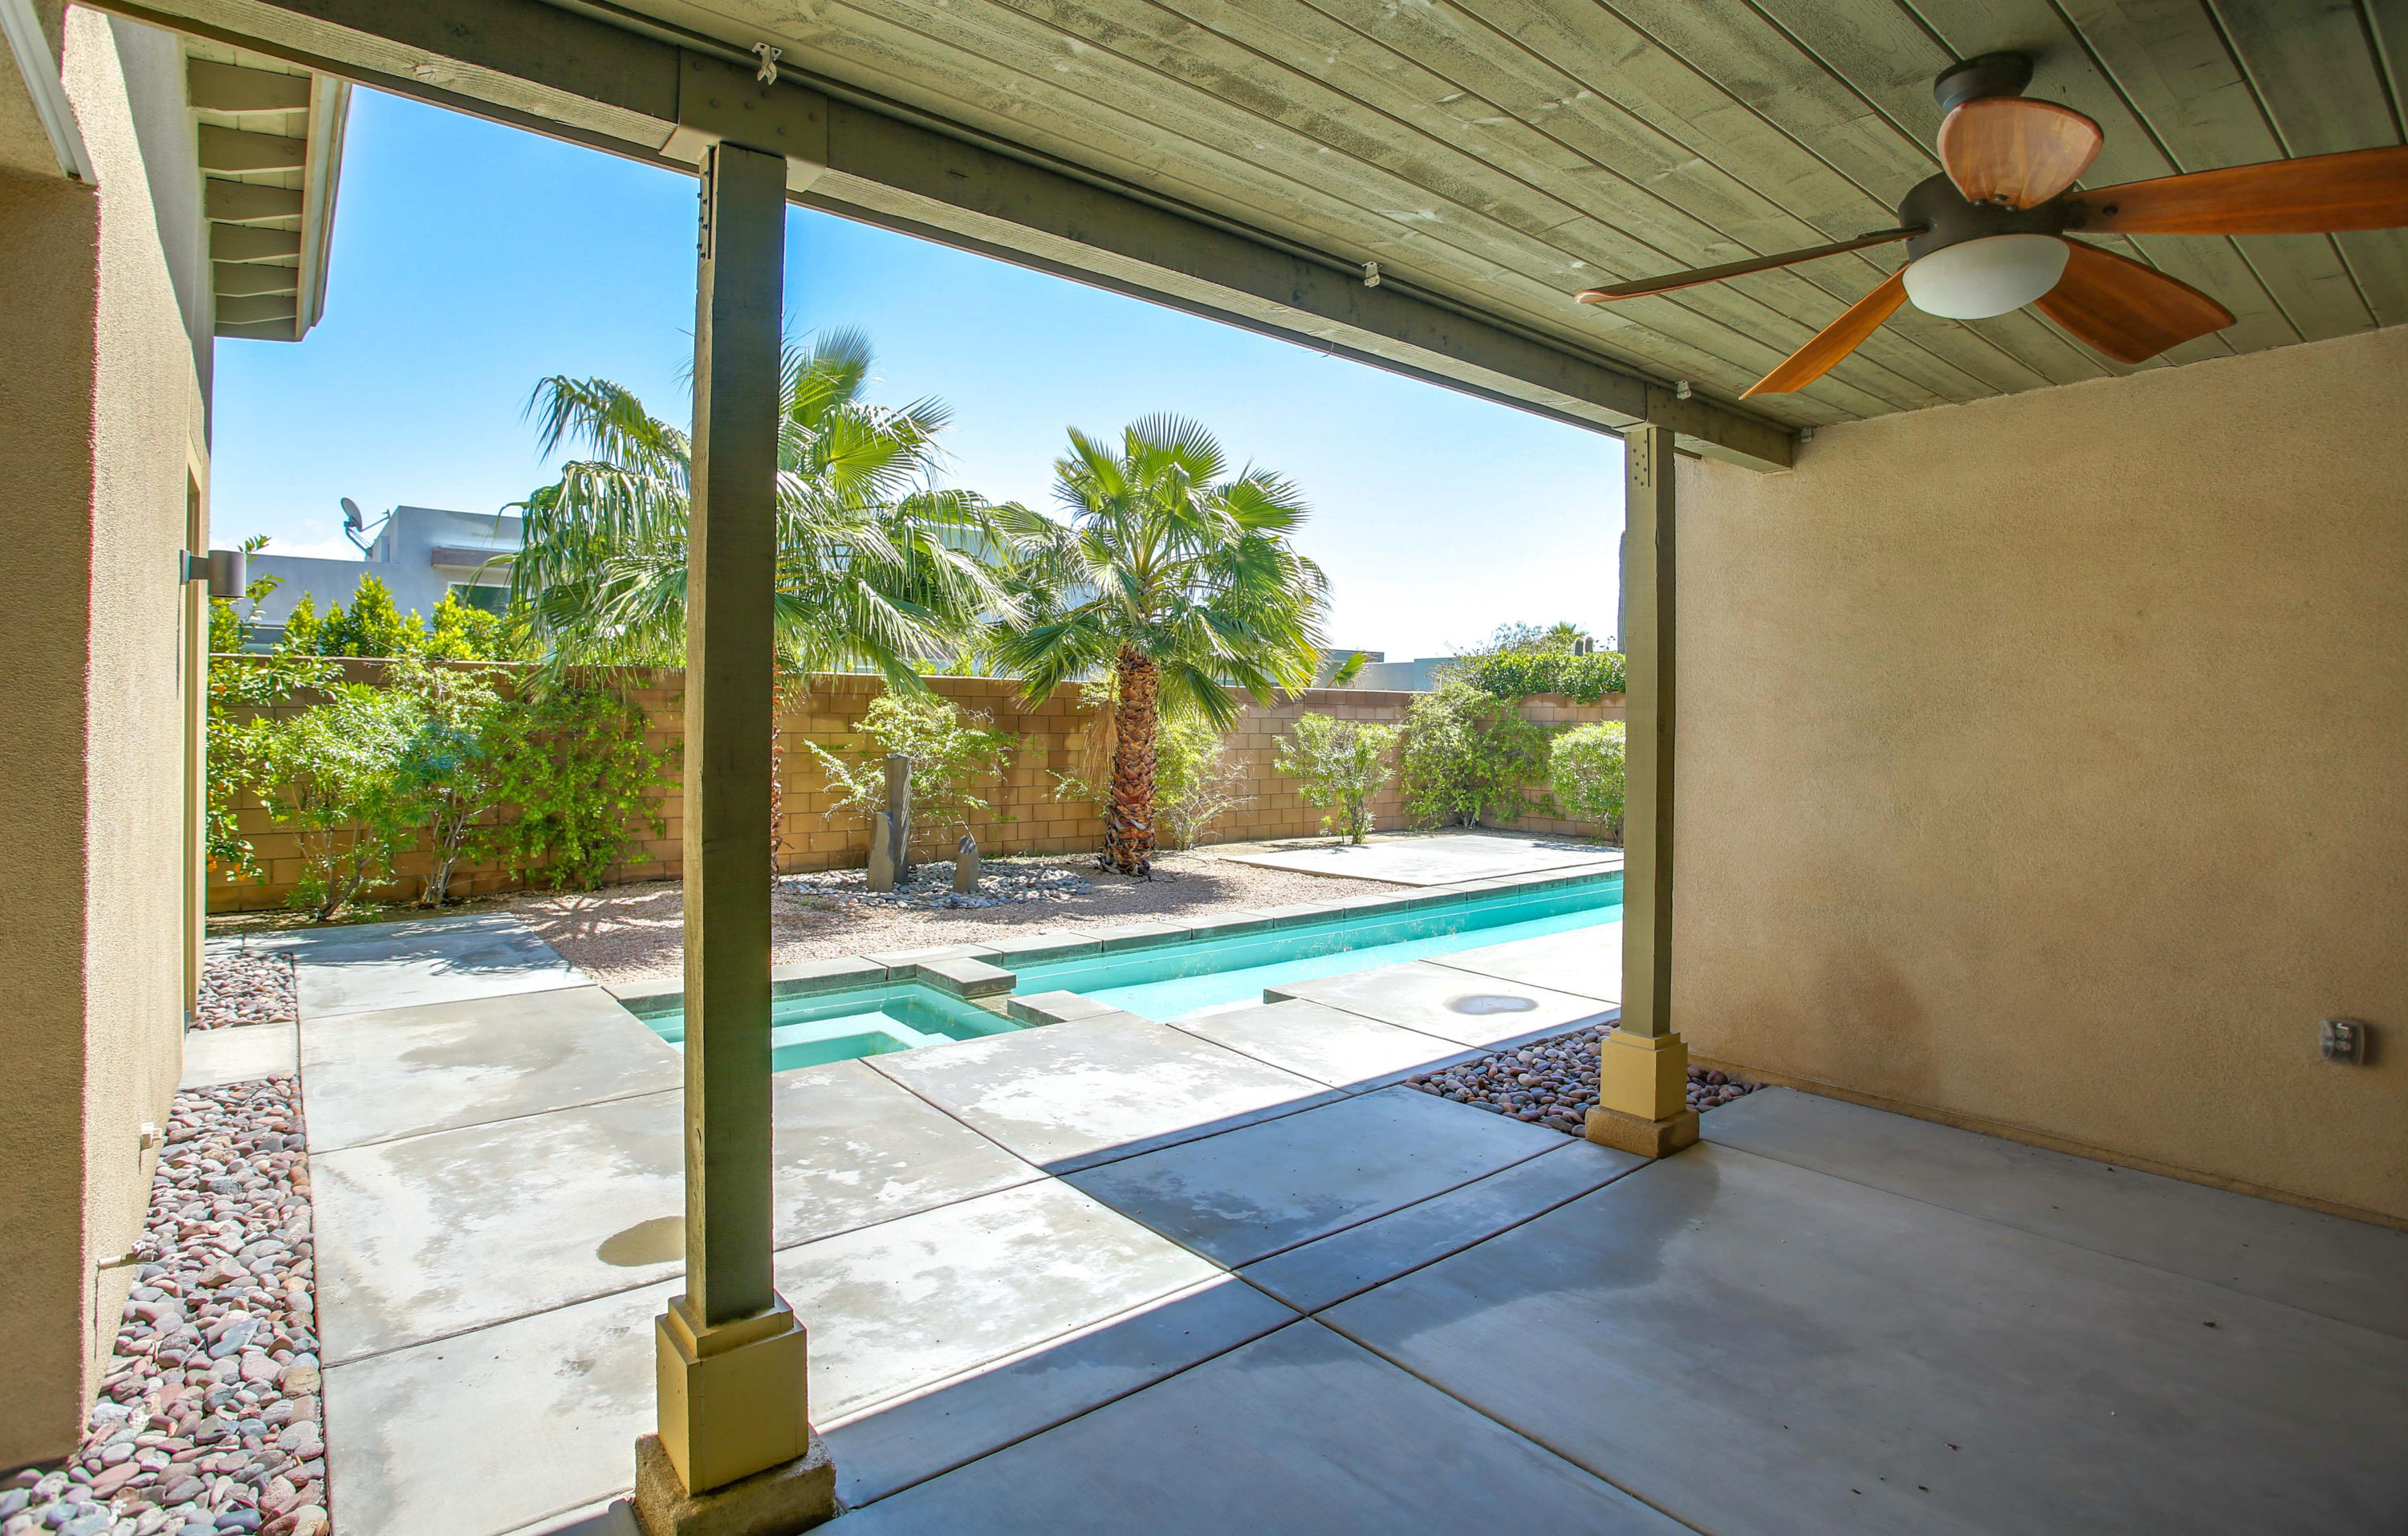 682 Axis Way, Palm Springs, California 92262, 3 Bedrooms Bedrooms, ,3 BathroomsBathrooms,Residential,For Sale,682 Axis Way,219041773